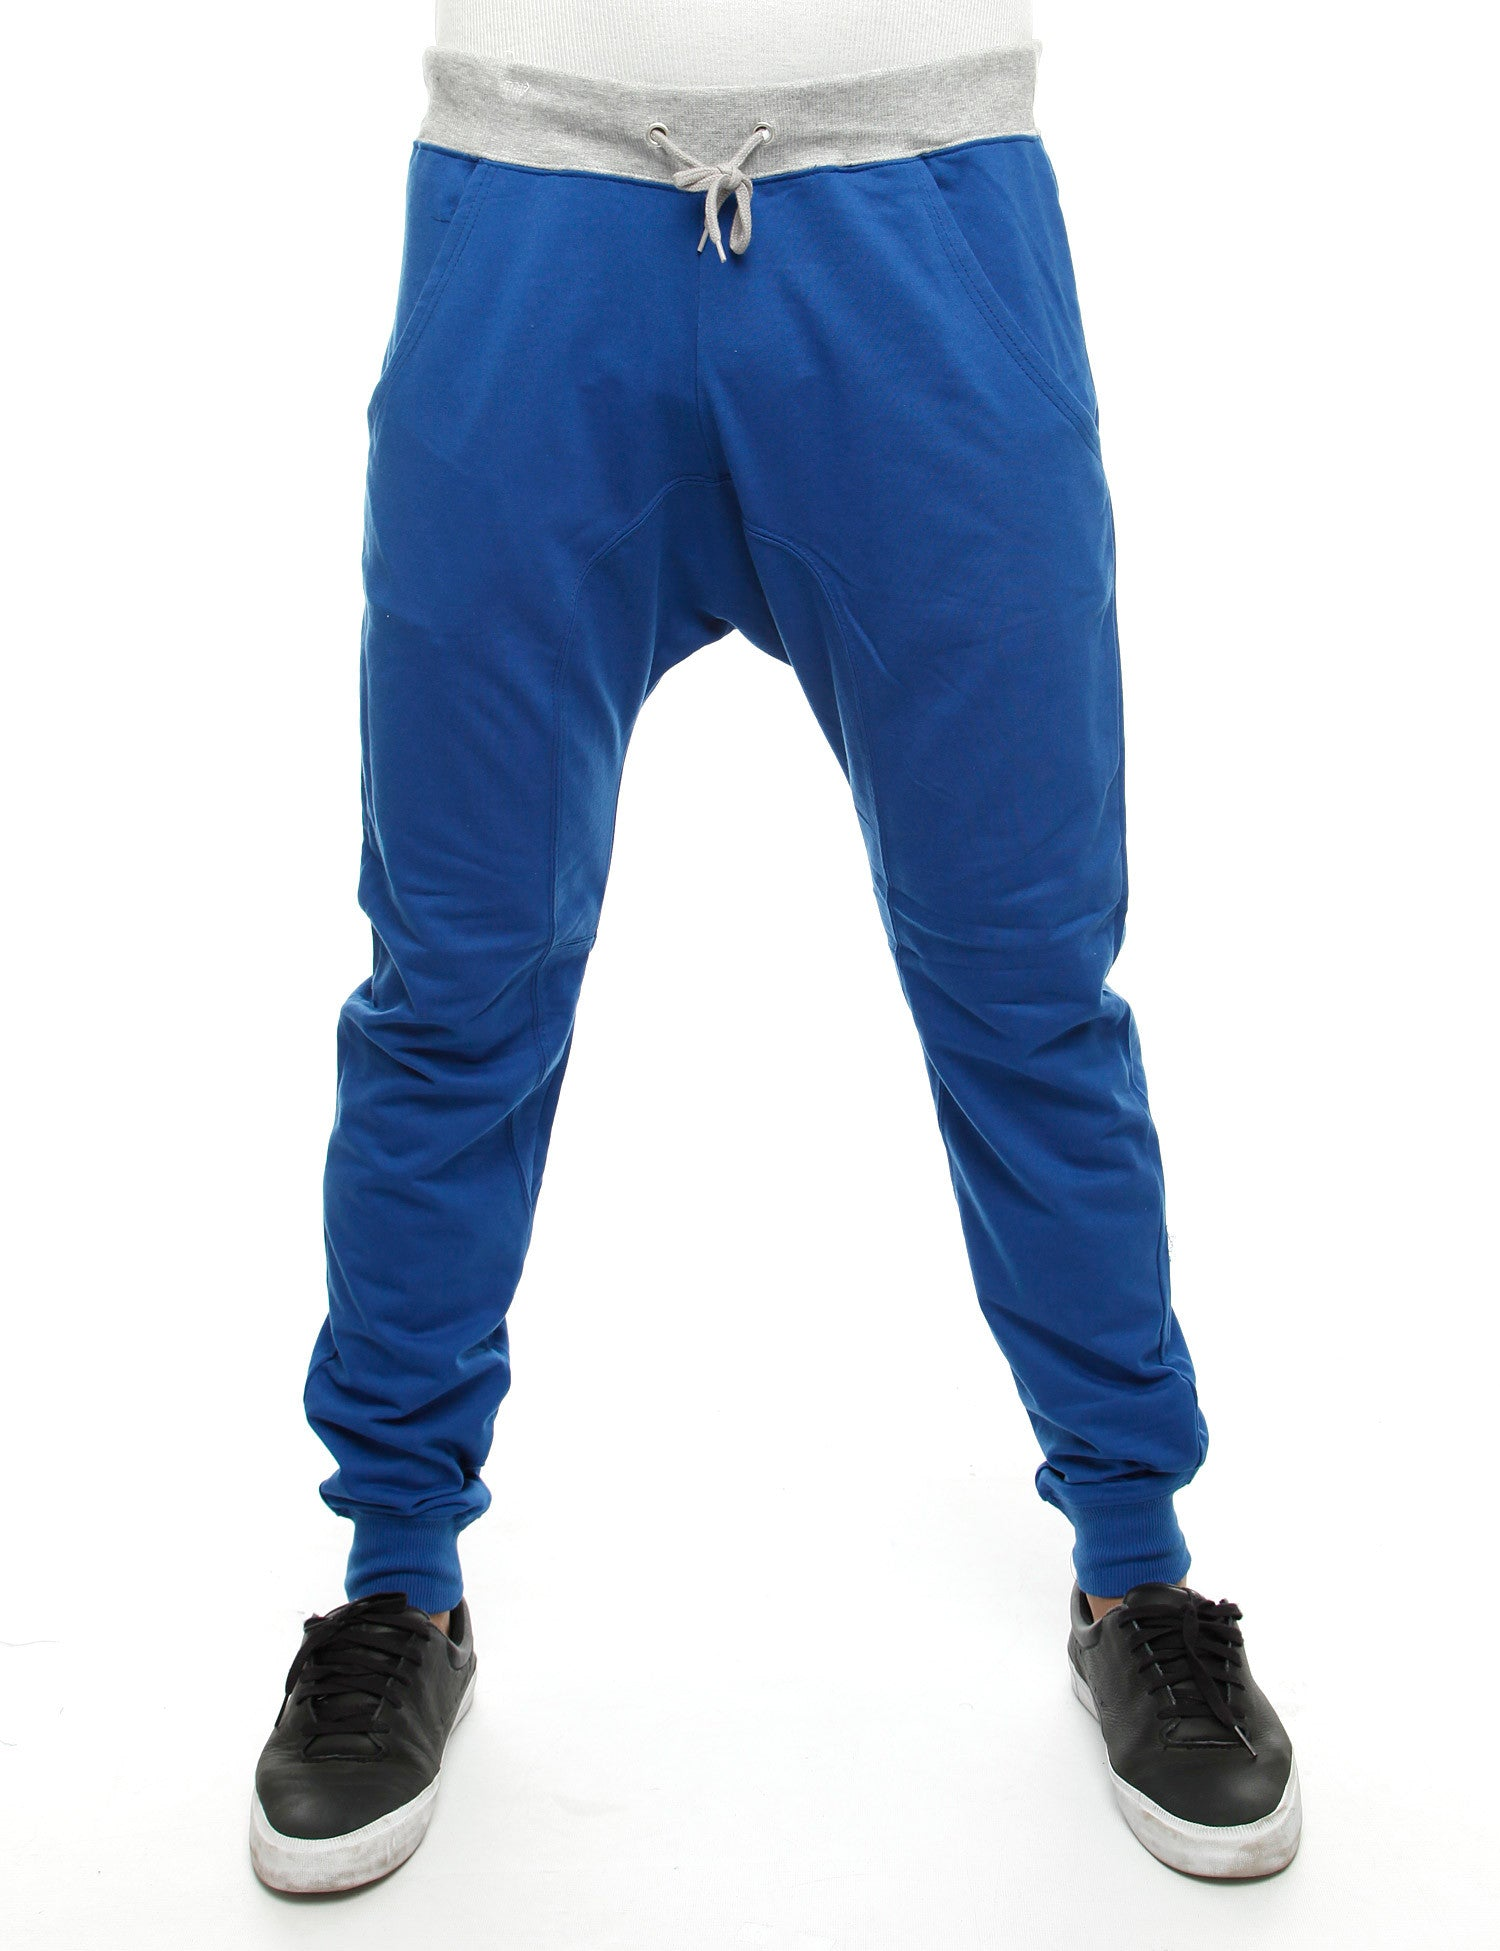 Royal Blue 2-Tone Sweatpants RB5JO0002 Blue